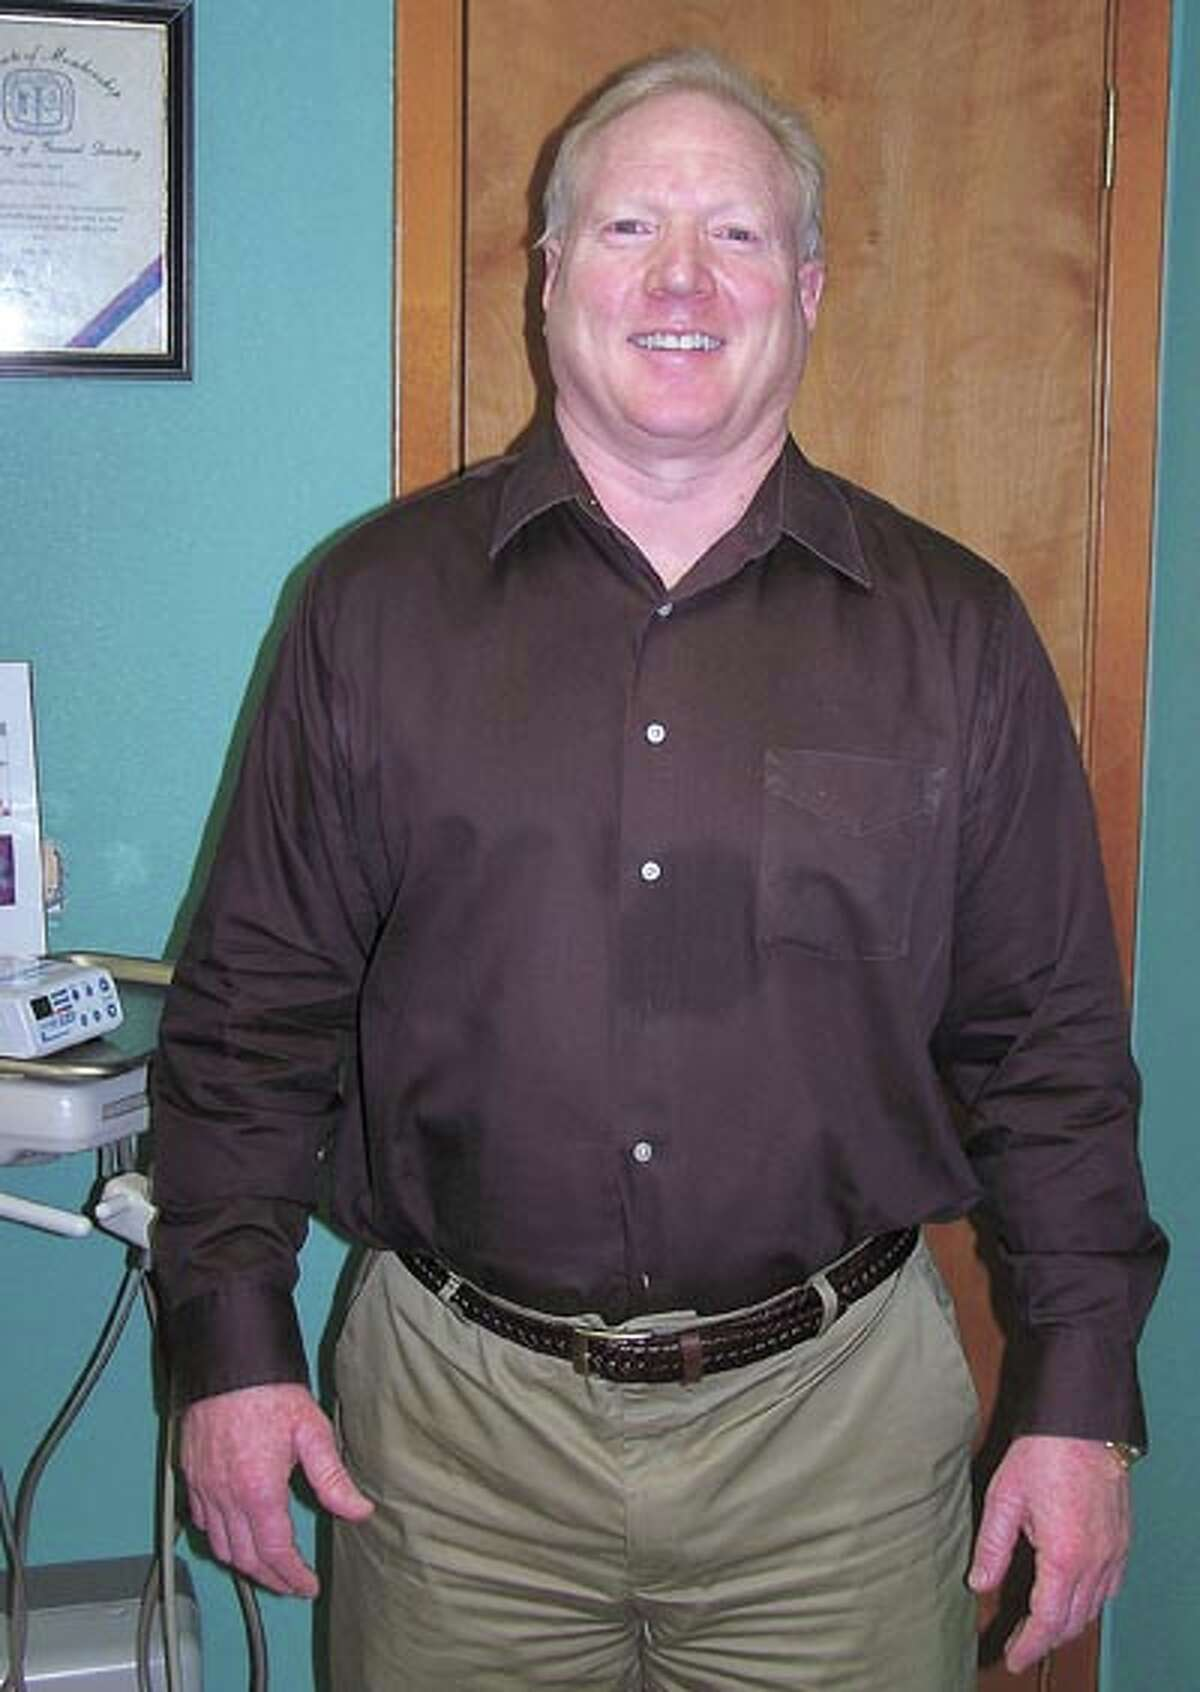 Longtime area dentist Dr. Russell Toler is now at Dental Solution's Midland office Monday through Wednesday, and on Saturday from 9-1. Call 432-697-4200 for an appointment.